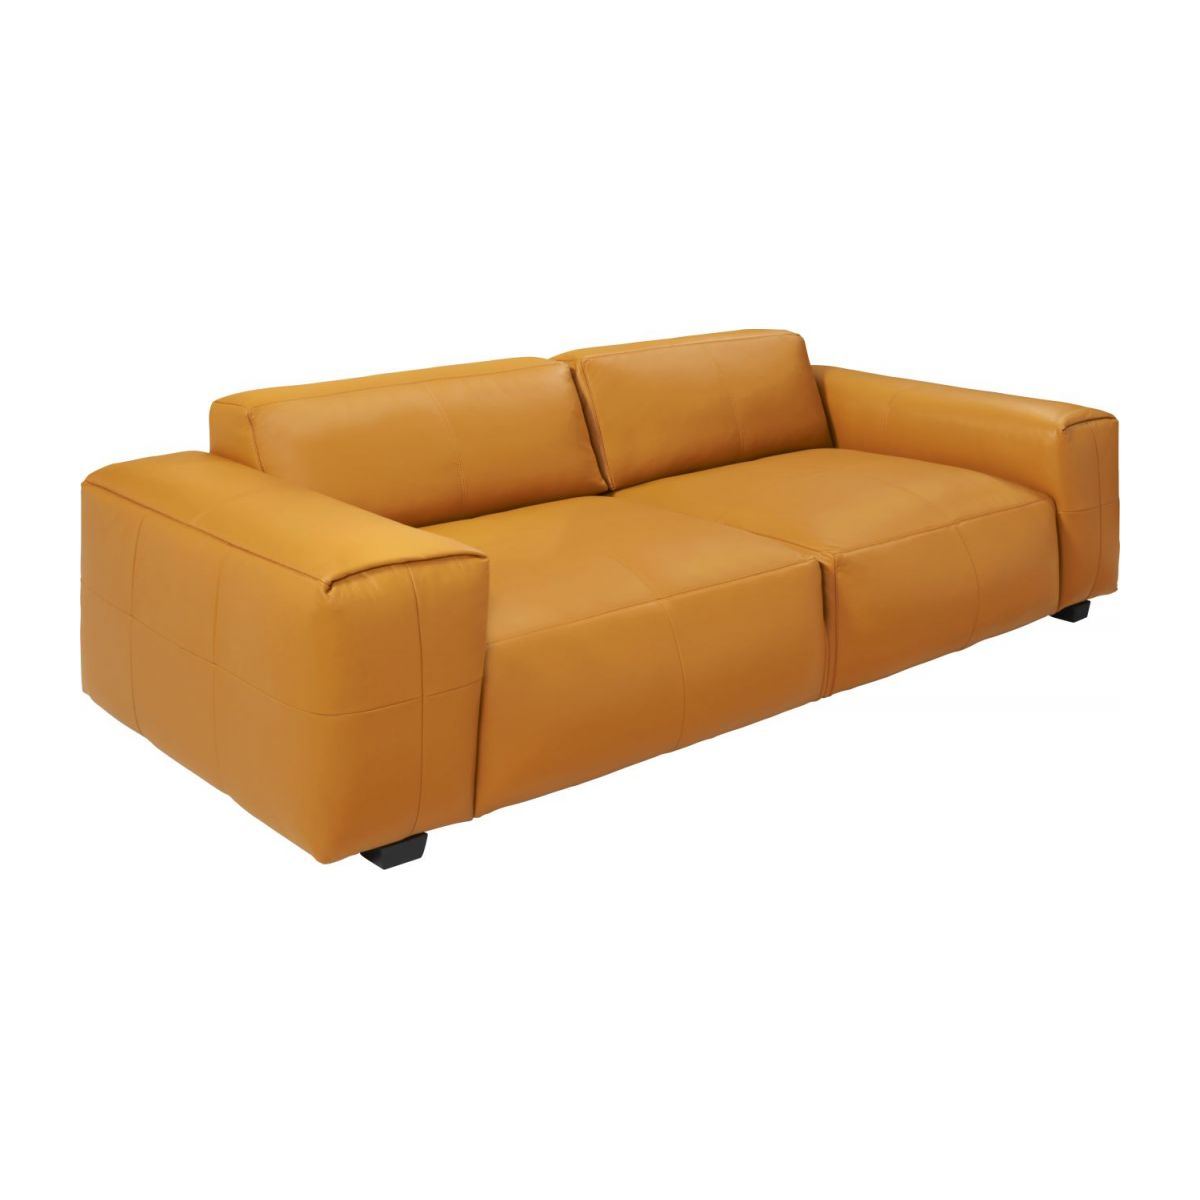 2 seater sofa in Savoy semi-aniline leather, cognac n°1